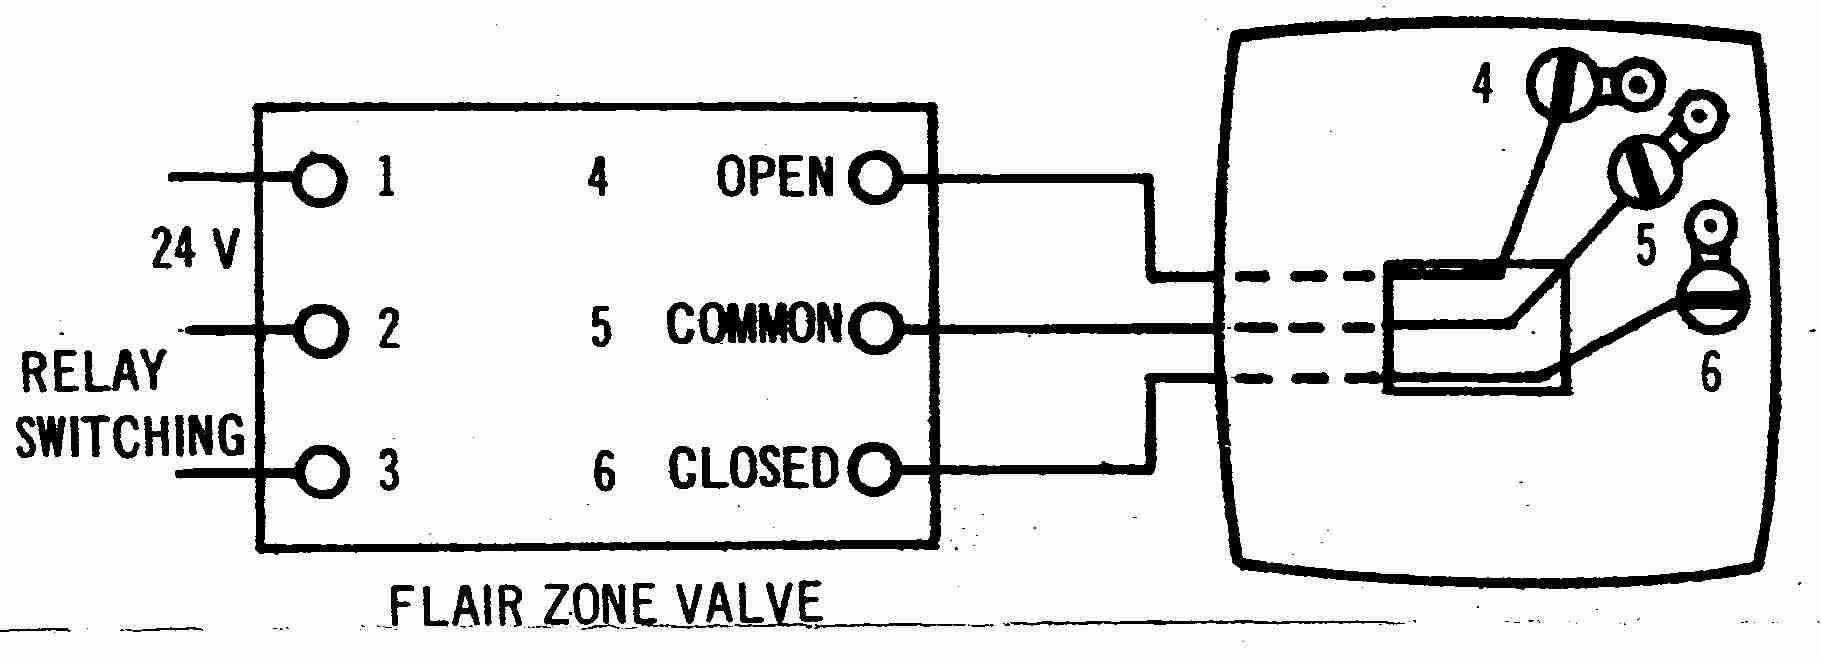 room thermostat wiring diagrams for hvac systems honeywell fan switch wiring diagram honeywell switching relay wiring diagram